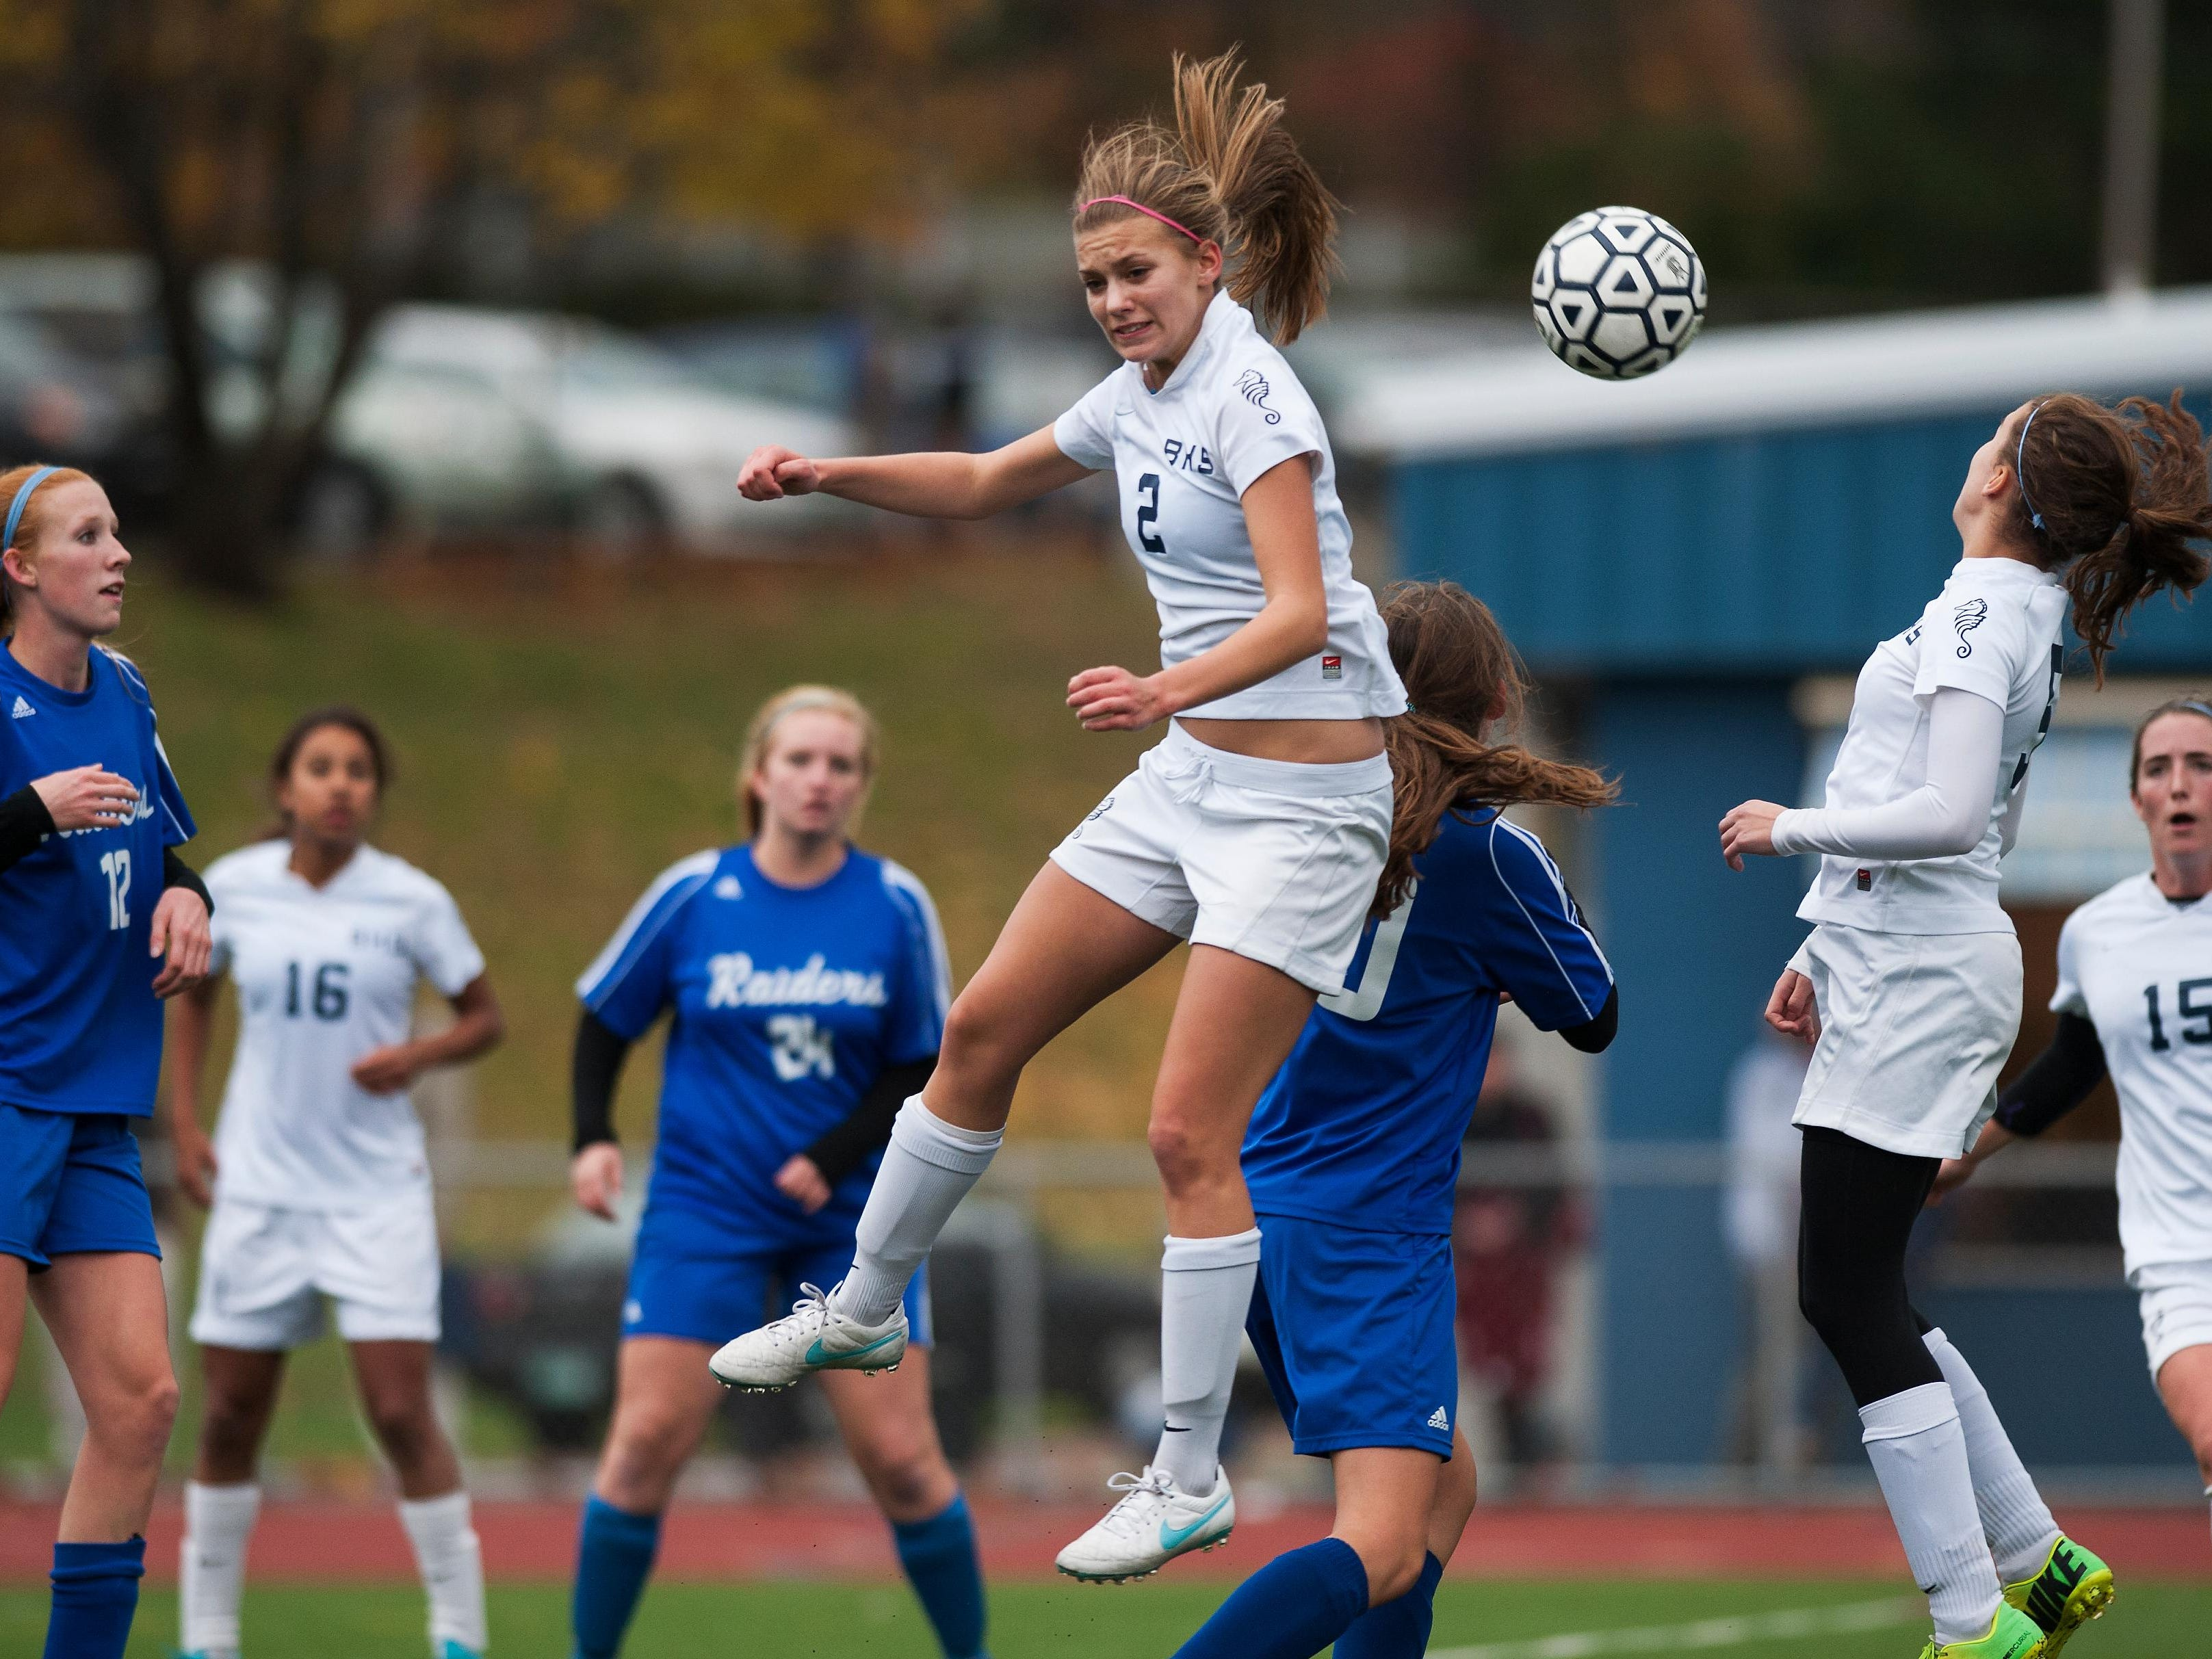 Burlington's Noe Musman (2) leaps to head the ball in front of the net during the girls playoff soccer game between the U-32 Raiders and the Burlington Sea Horses at Buck Hard Field in 2014.